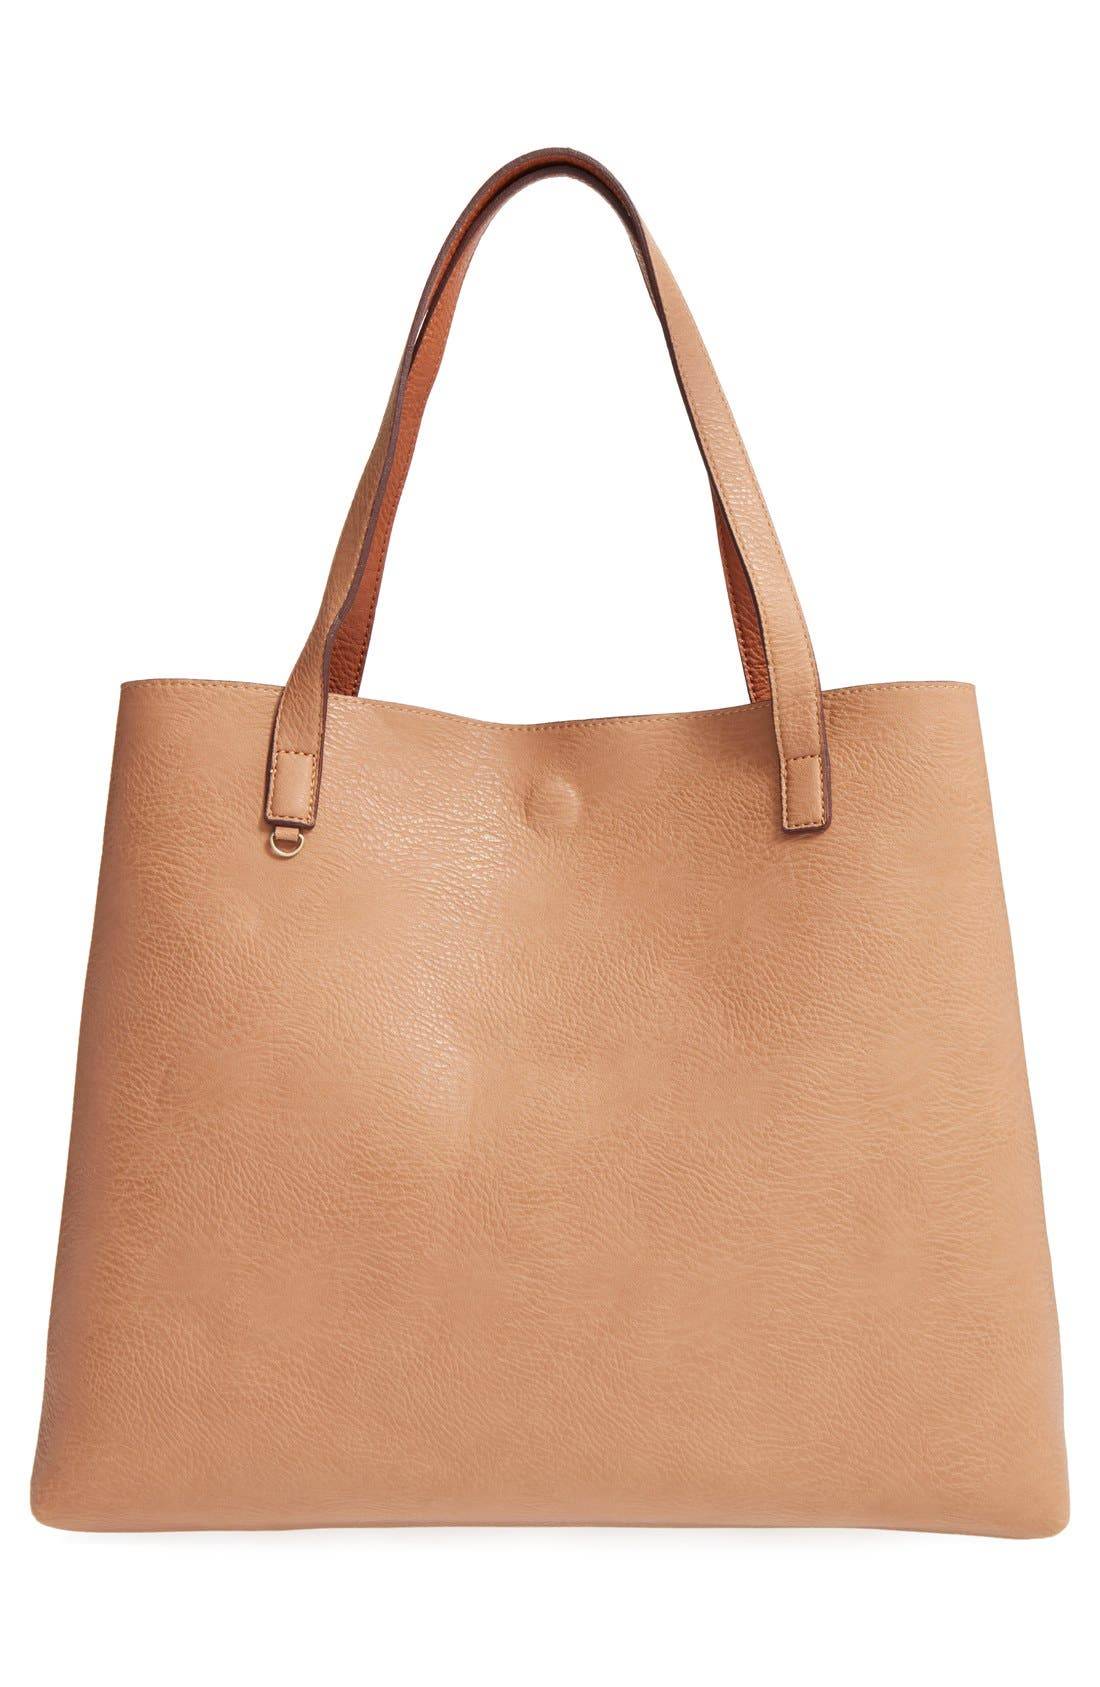 STREET LEVEL,                             Reversible Faux Leather Tote & Wristlet,                             Alternate thumbnail 4, color,                             COGNAC